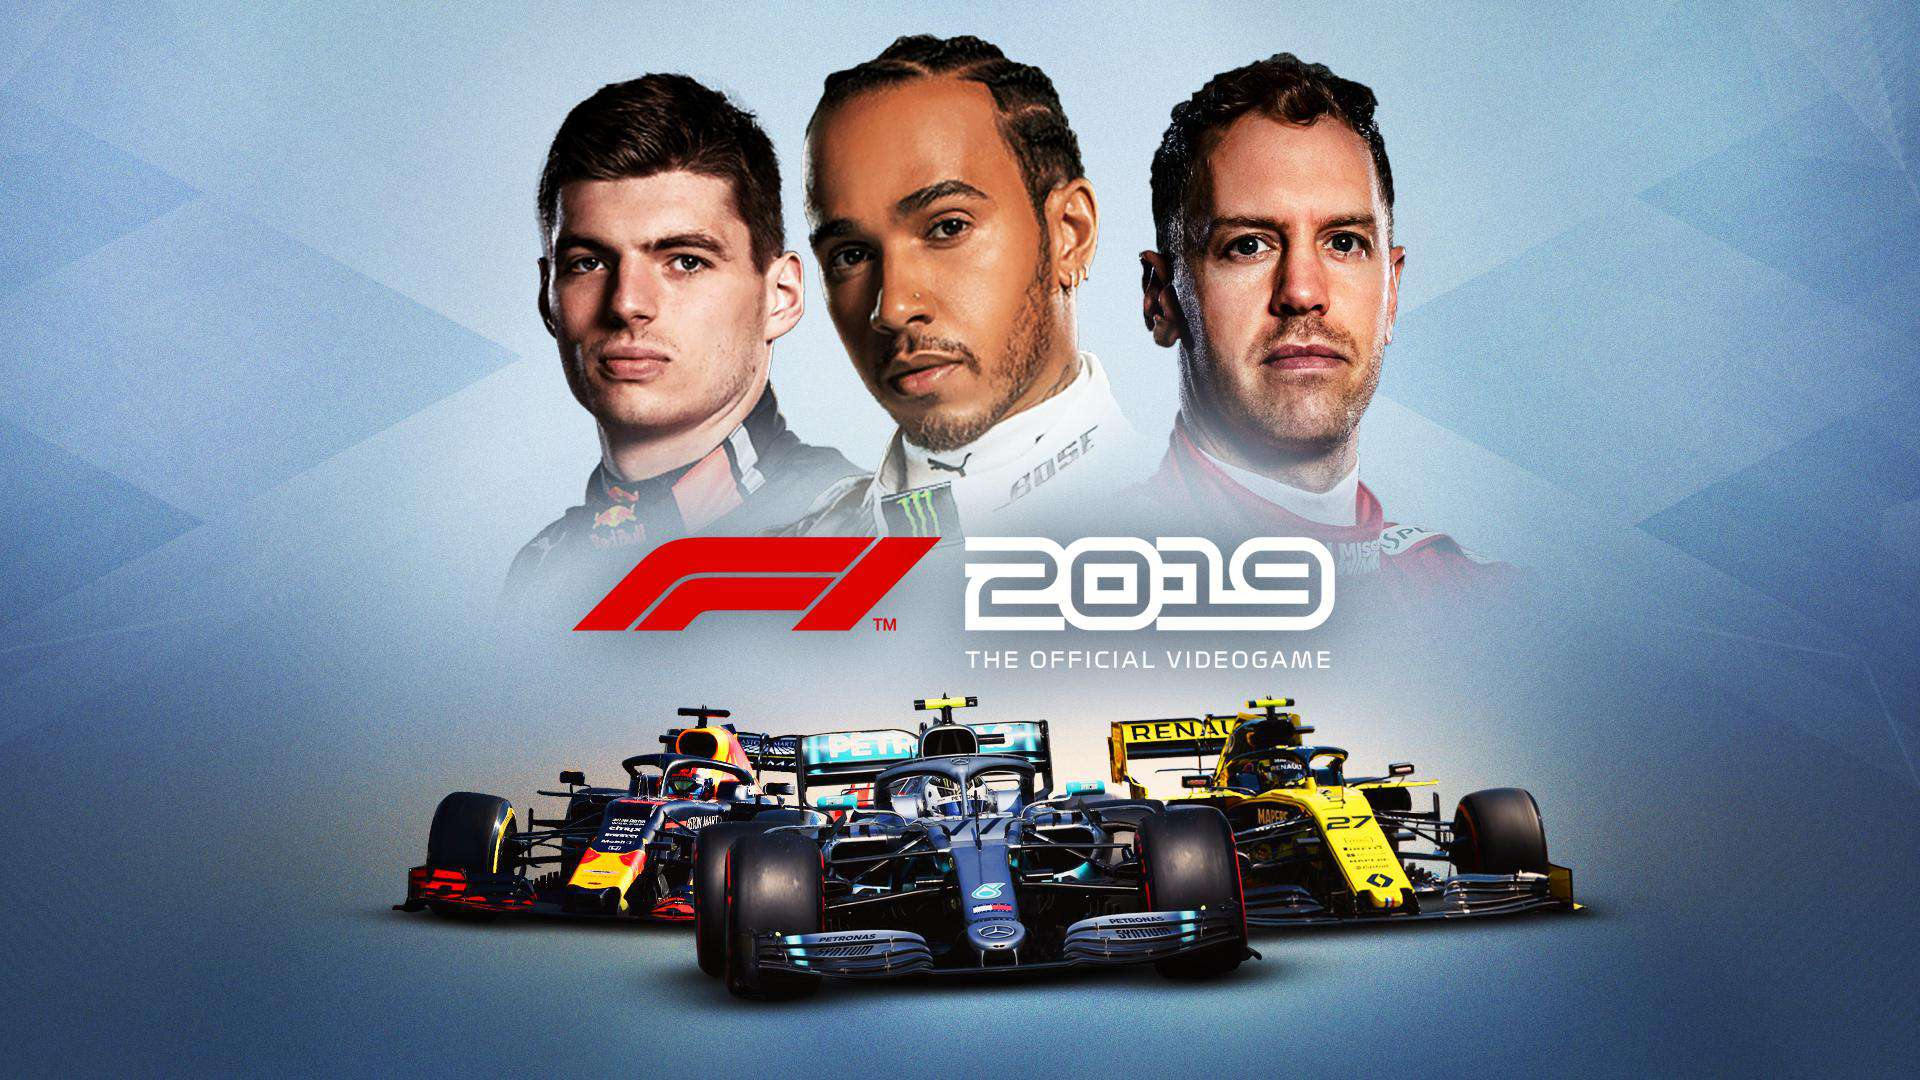 Defeat Your Rivals And Celebrate Victory With The F1 2019 TV Advert